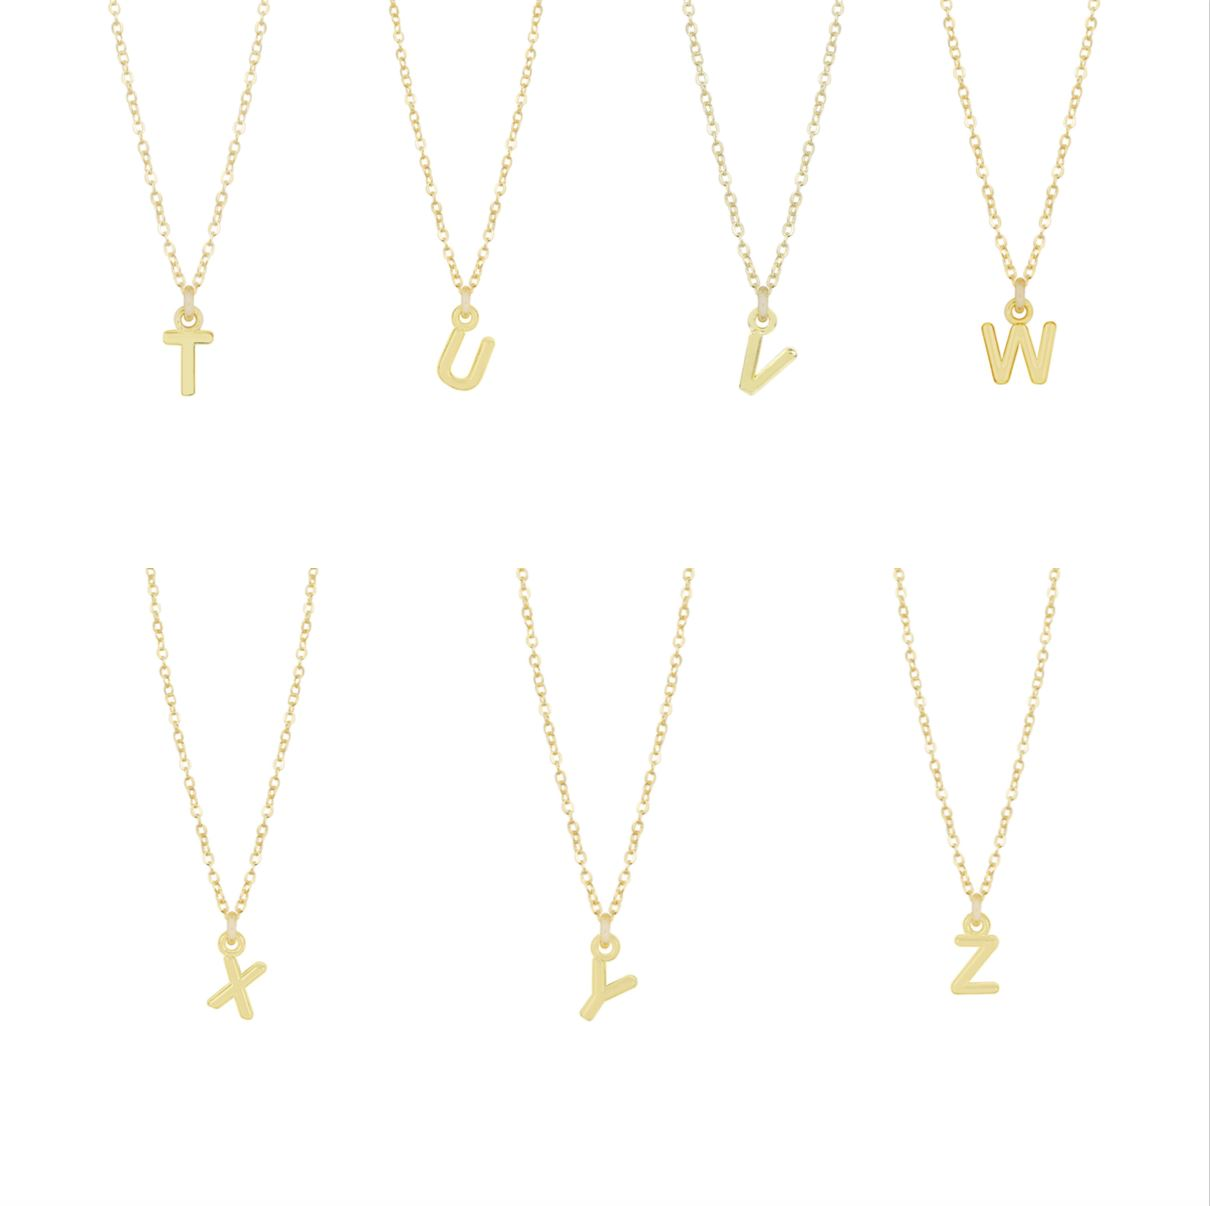 "Dainty gold Initial Necklaces ""T, U, V, W, X, Y, Z""  shown on a white background, made by Katie Dean Jewelry."